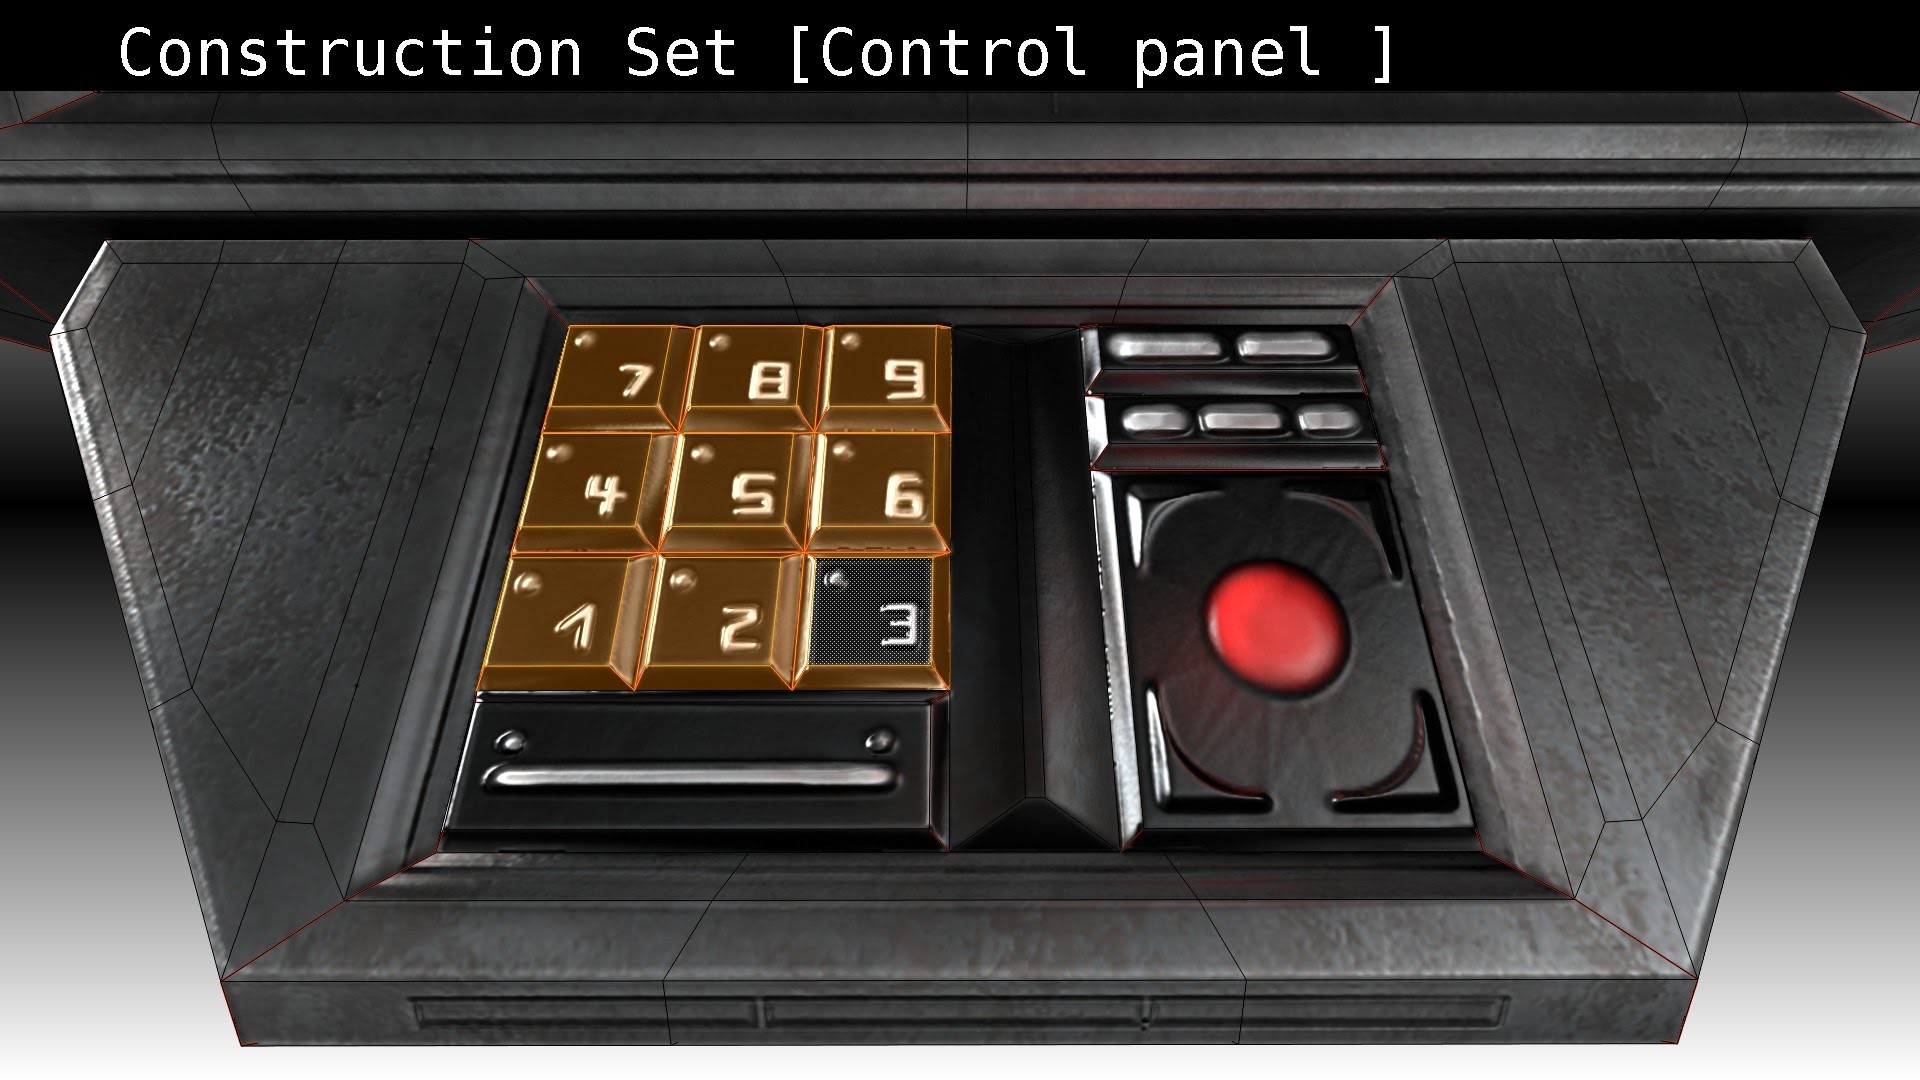 Sci Fi Control Panel : Spaceship control panel wallpaper images